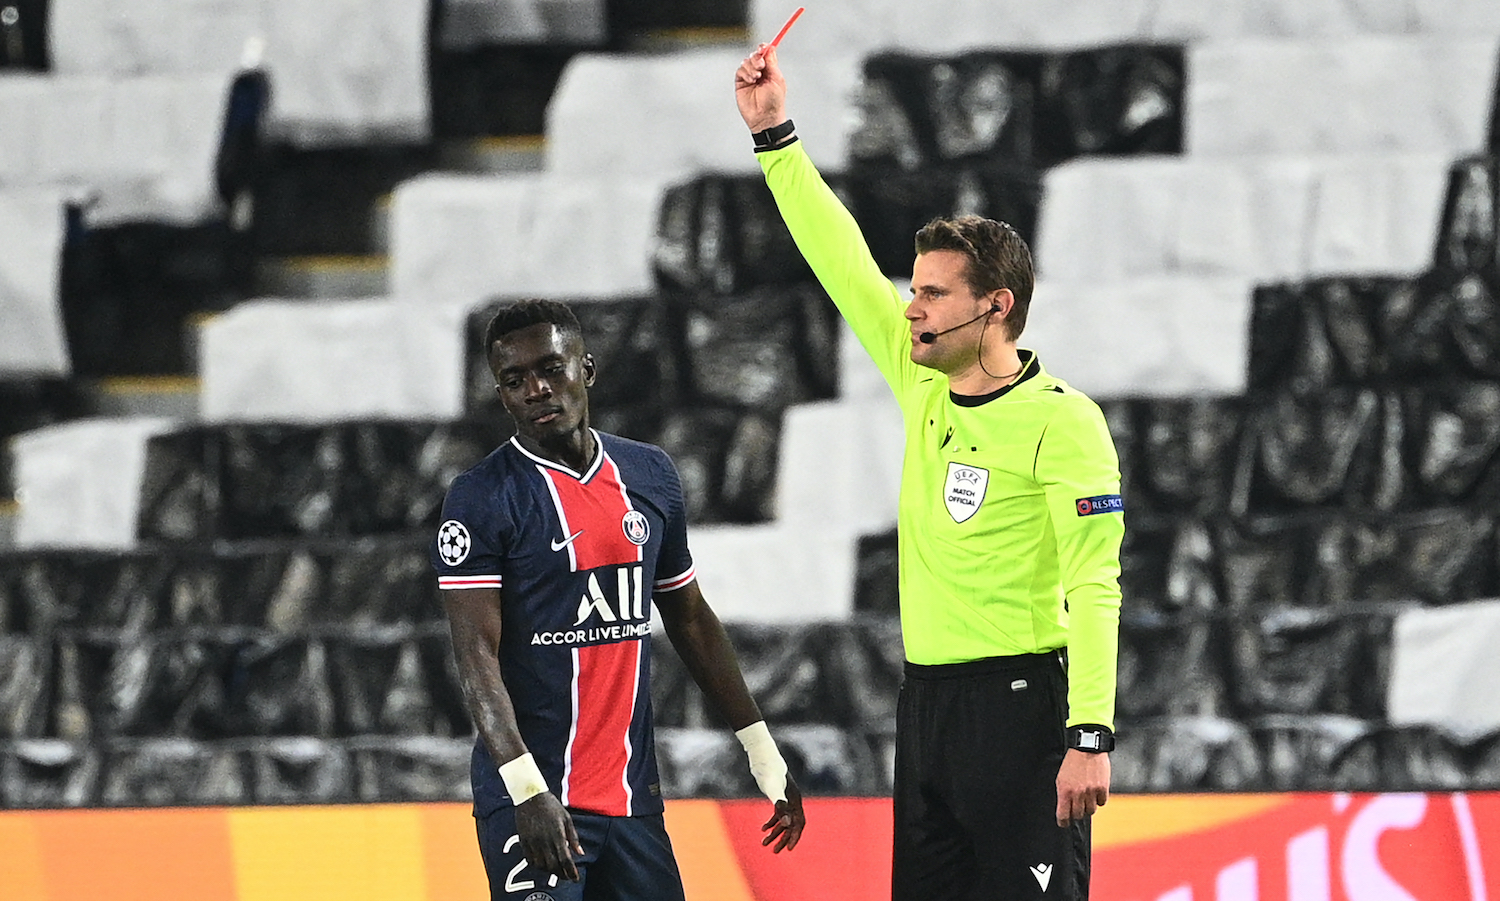 Referee Felix Brych (R) shows a red card to Paris Saint-Germain's Senegalese midfielder Idrissa Gueye during the UEFA Champions League first leg semi-final football match between Paris Saint-Germain (PSG) and Manchester City at the Parc des Princes stadium in Paris on April 28, 2021. (Photo by Anne-Christine POUJOULAT / AFP) (Photo by ANNE-CHRISTINE POUJOULAT/AFP via Getty Images)